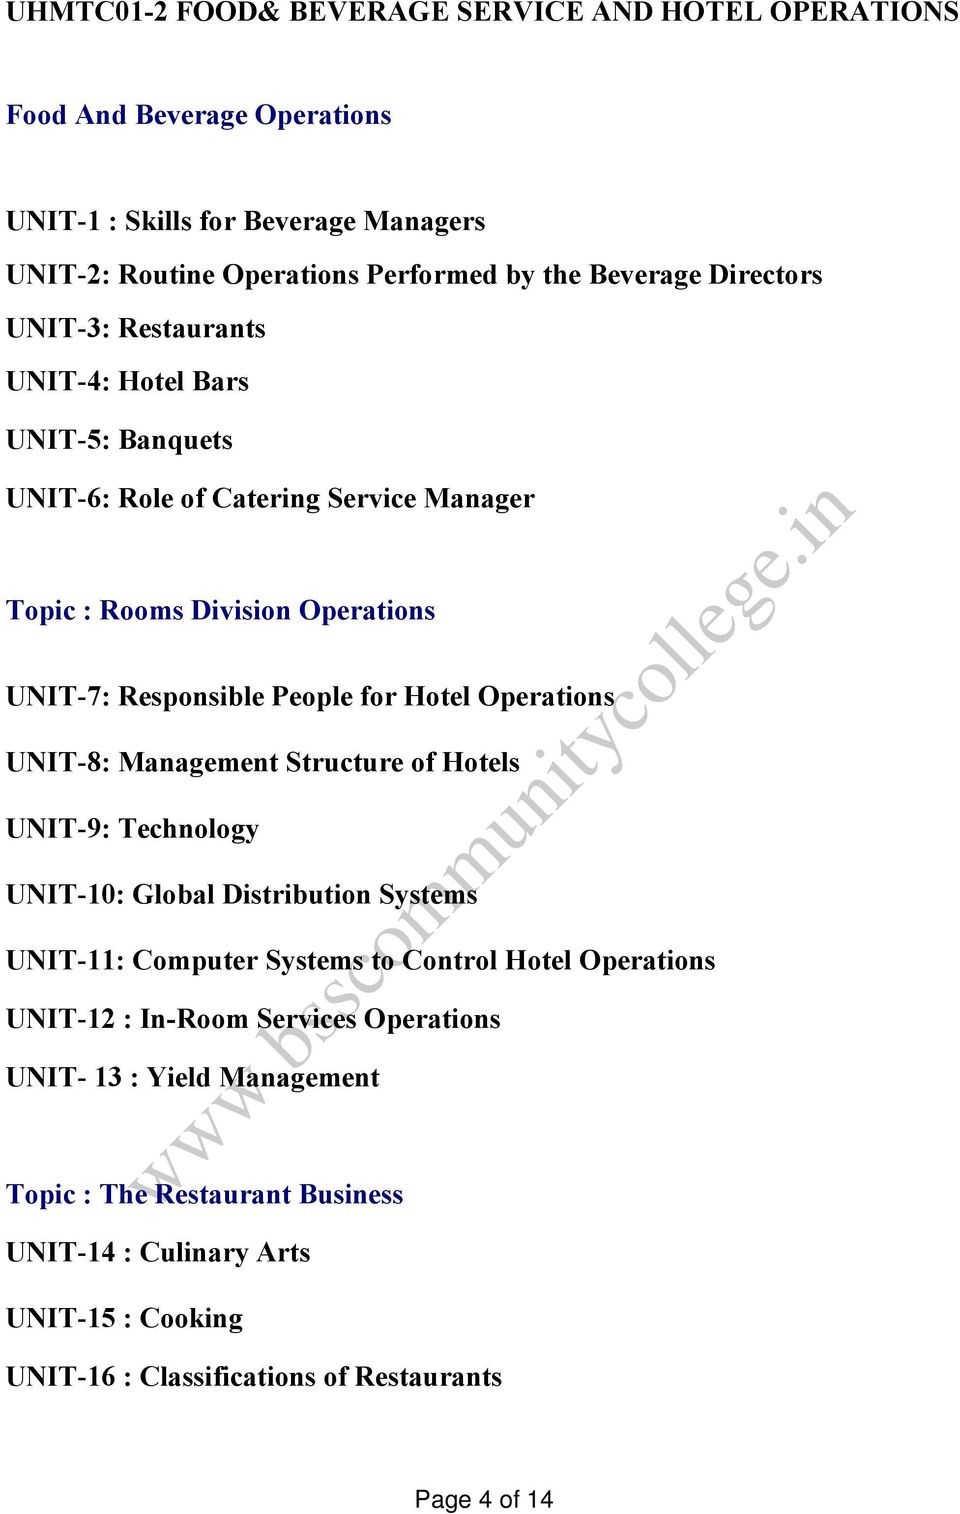 Hotel Operations UNIT-8: Management Structure of Hotels UNIT-9: Technology UNIT-10: Global Distribution Systems UNIT-11: Computer Systems to Control Hotel Operations UNIT-12 :